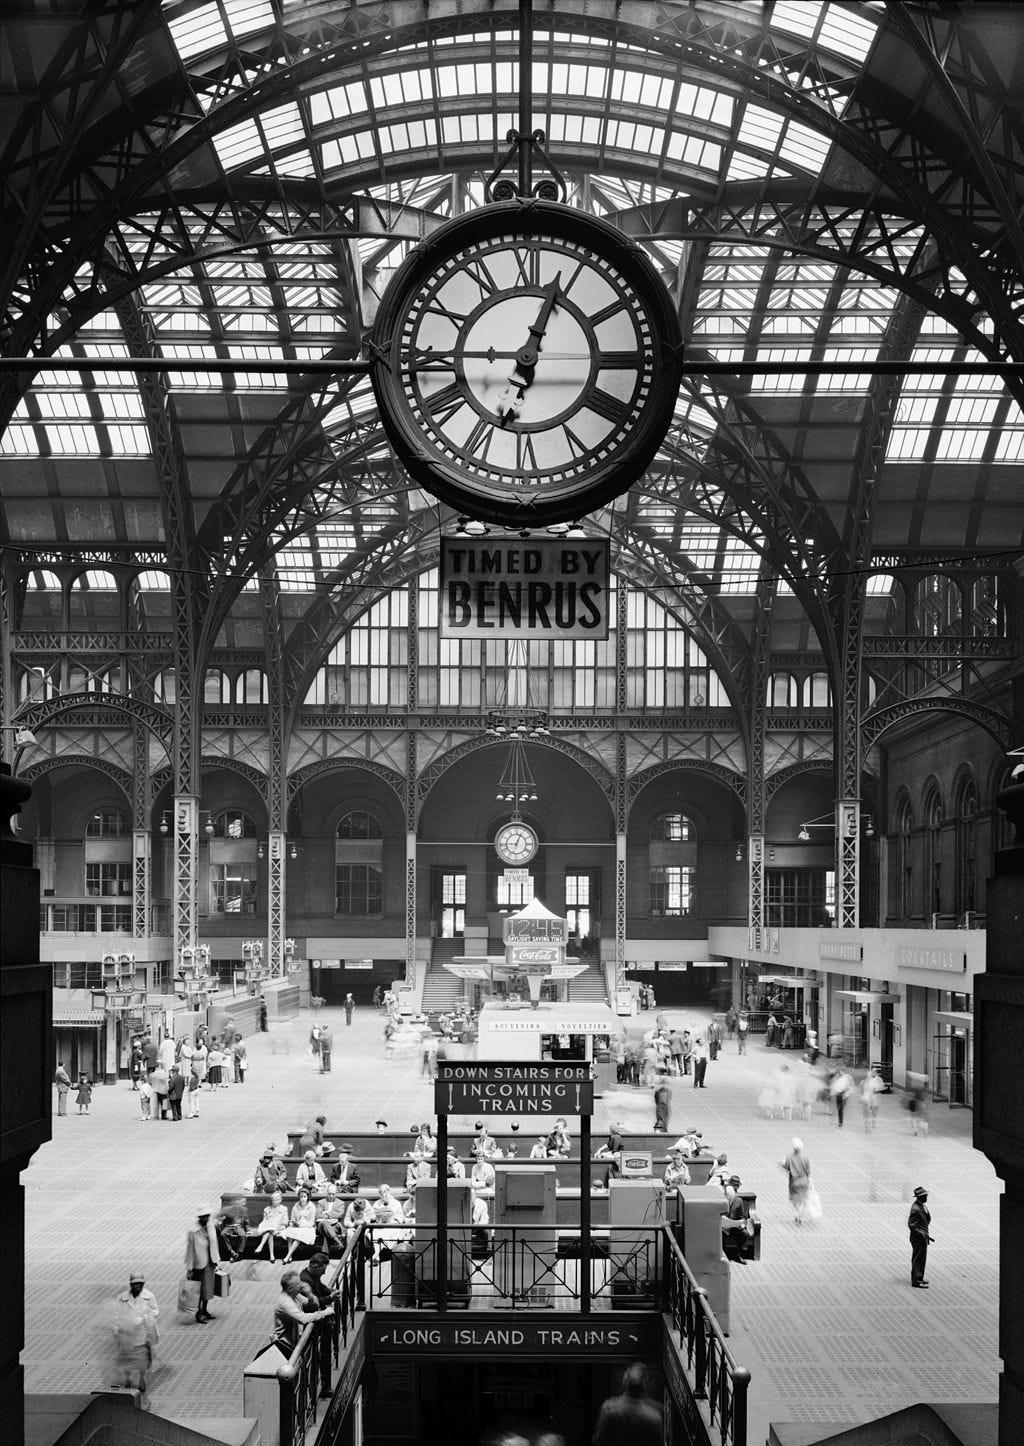 A large clock under a glass dome over the exit concourse